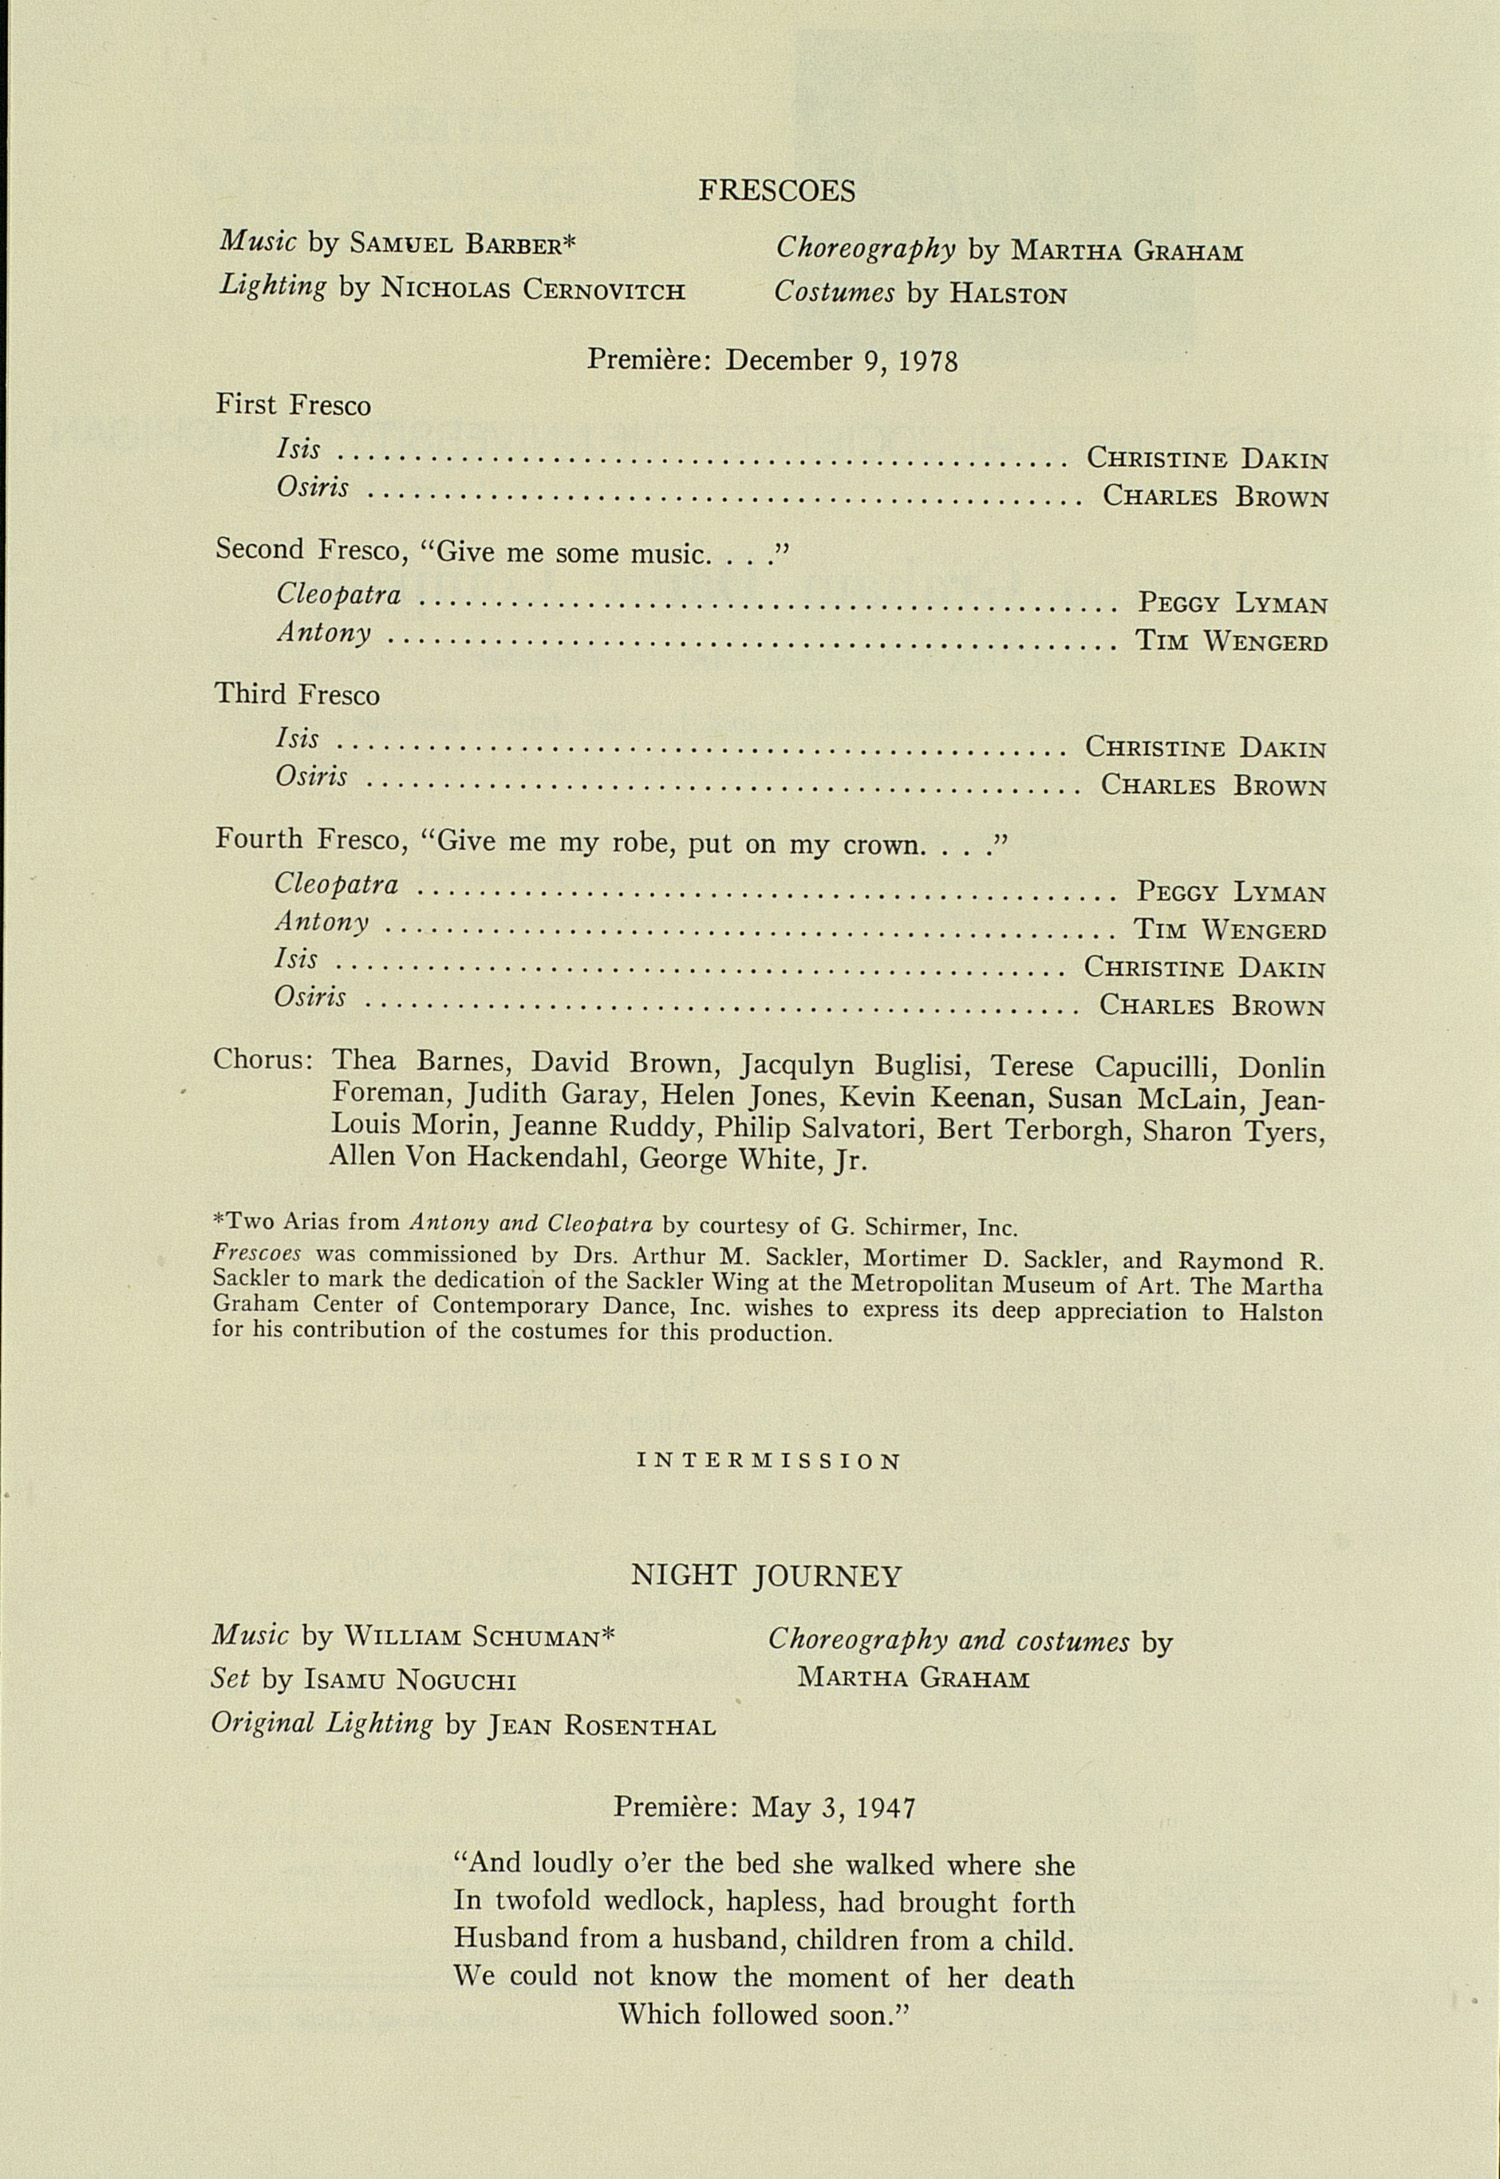 UMS Concert Program, November 7, 1979: International Presentations Of Music & Dance -- Martha Graham Dance Company image